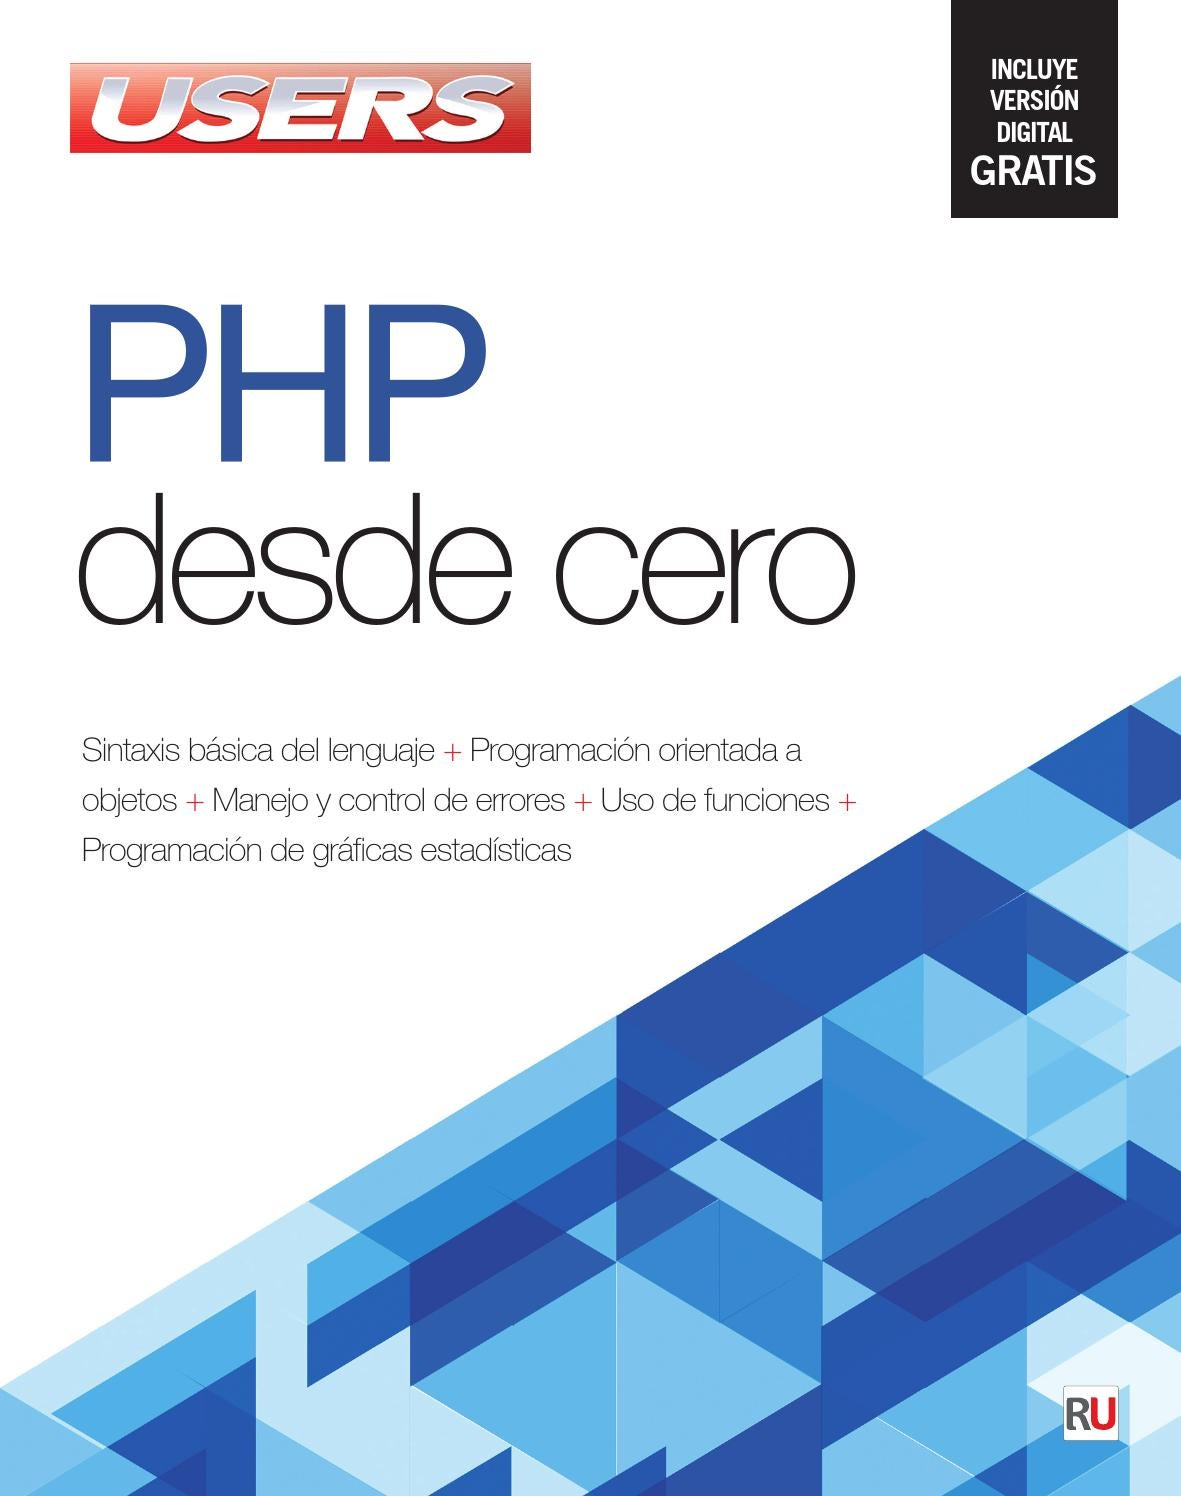 Php desde cero by RedUSERS - issuu